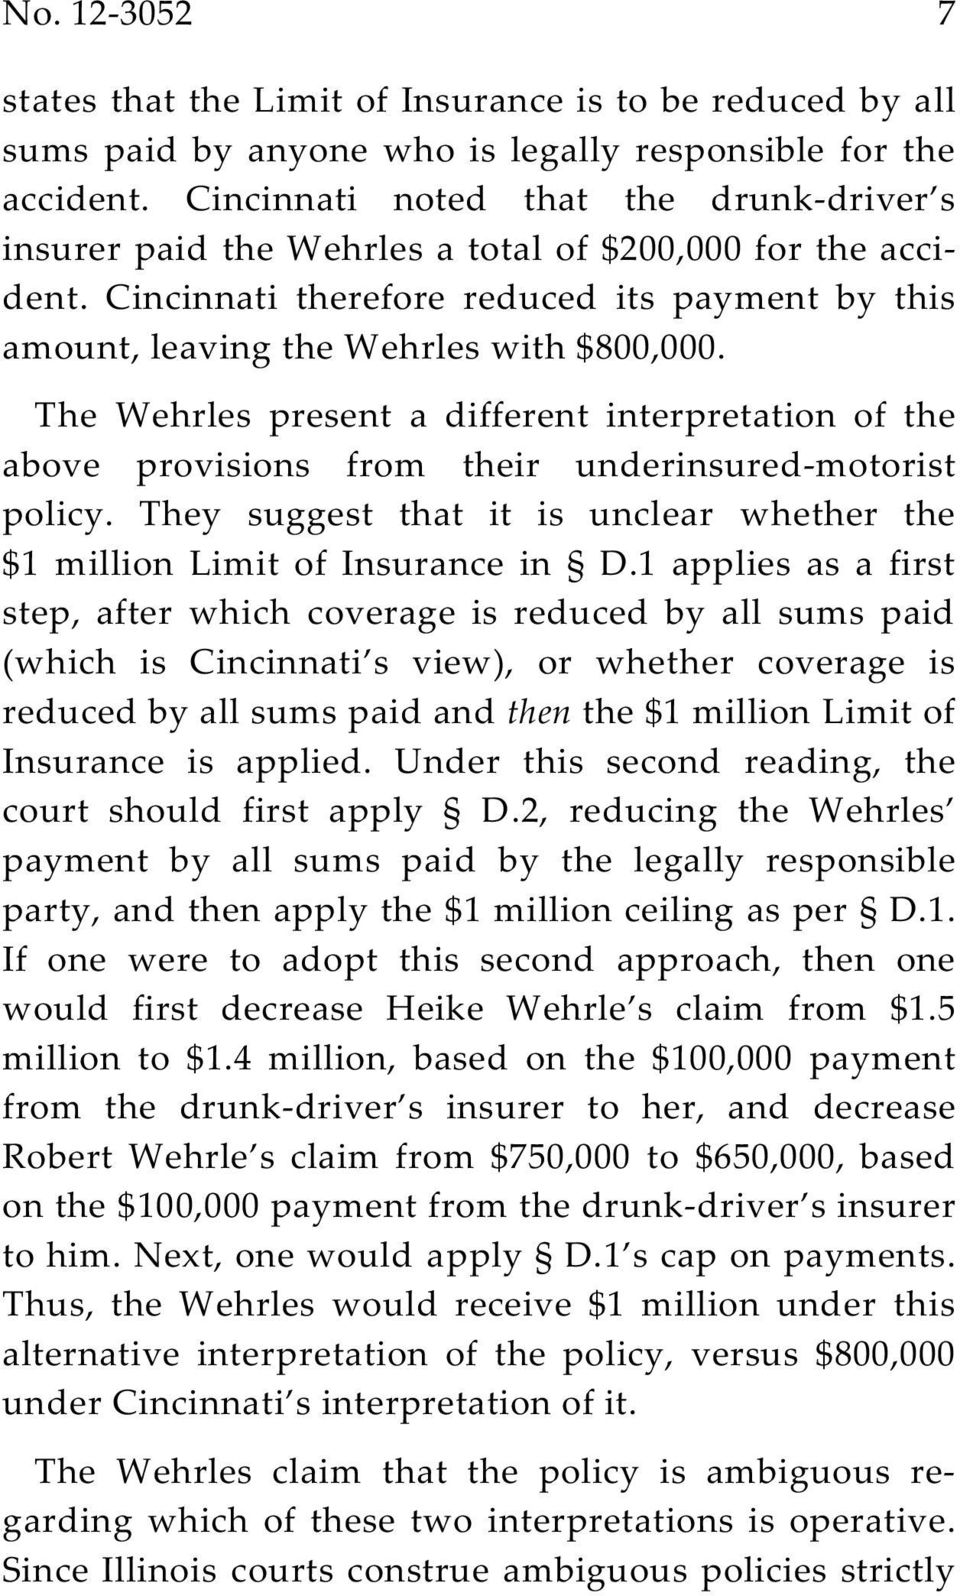 The Wehrles present a different interpretation of the above provisions from their underinsured-motorist policy. They suggest that it is unclear whether the $1 million Limit of Insurance in D.